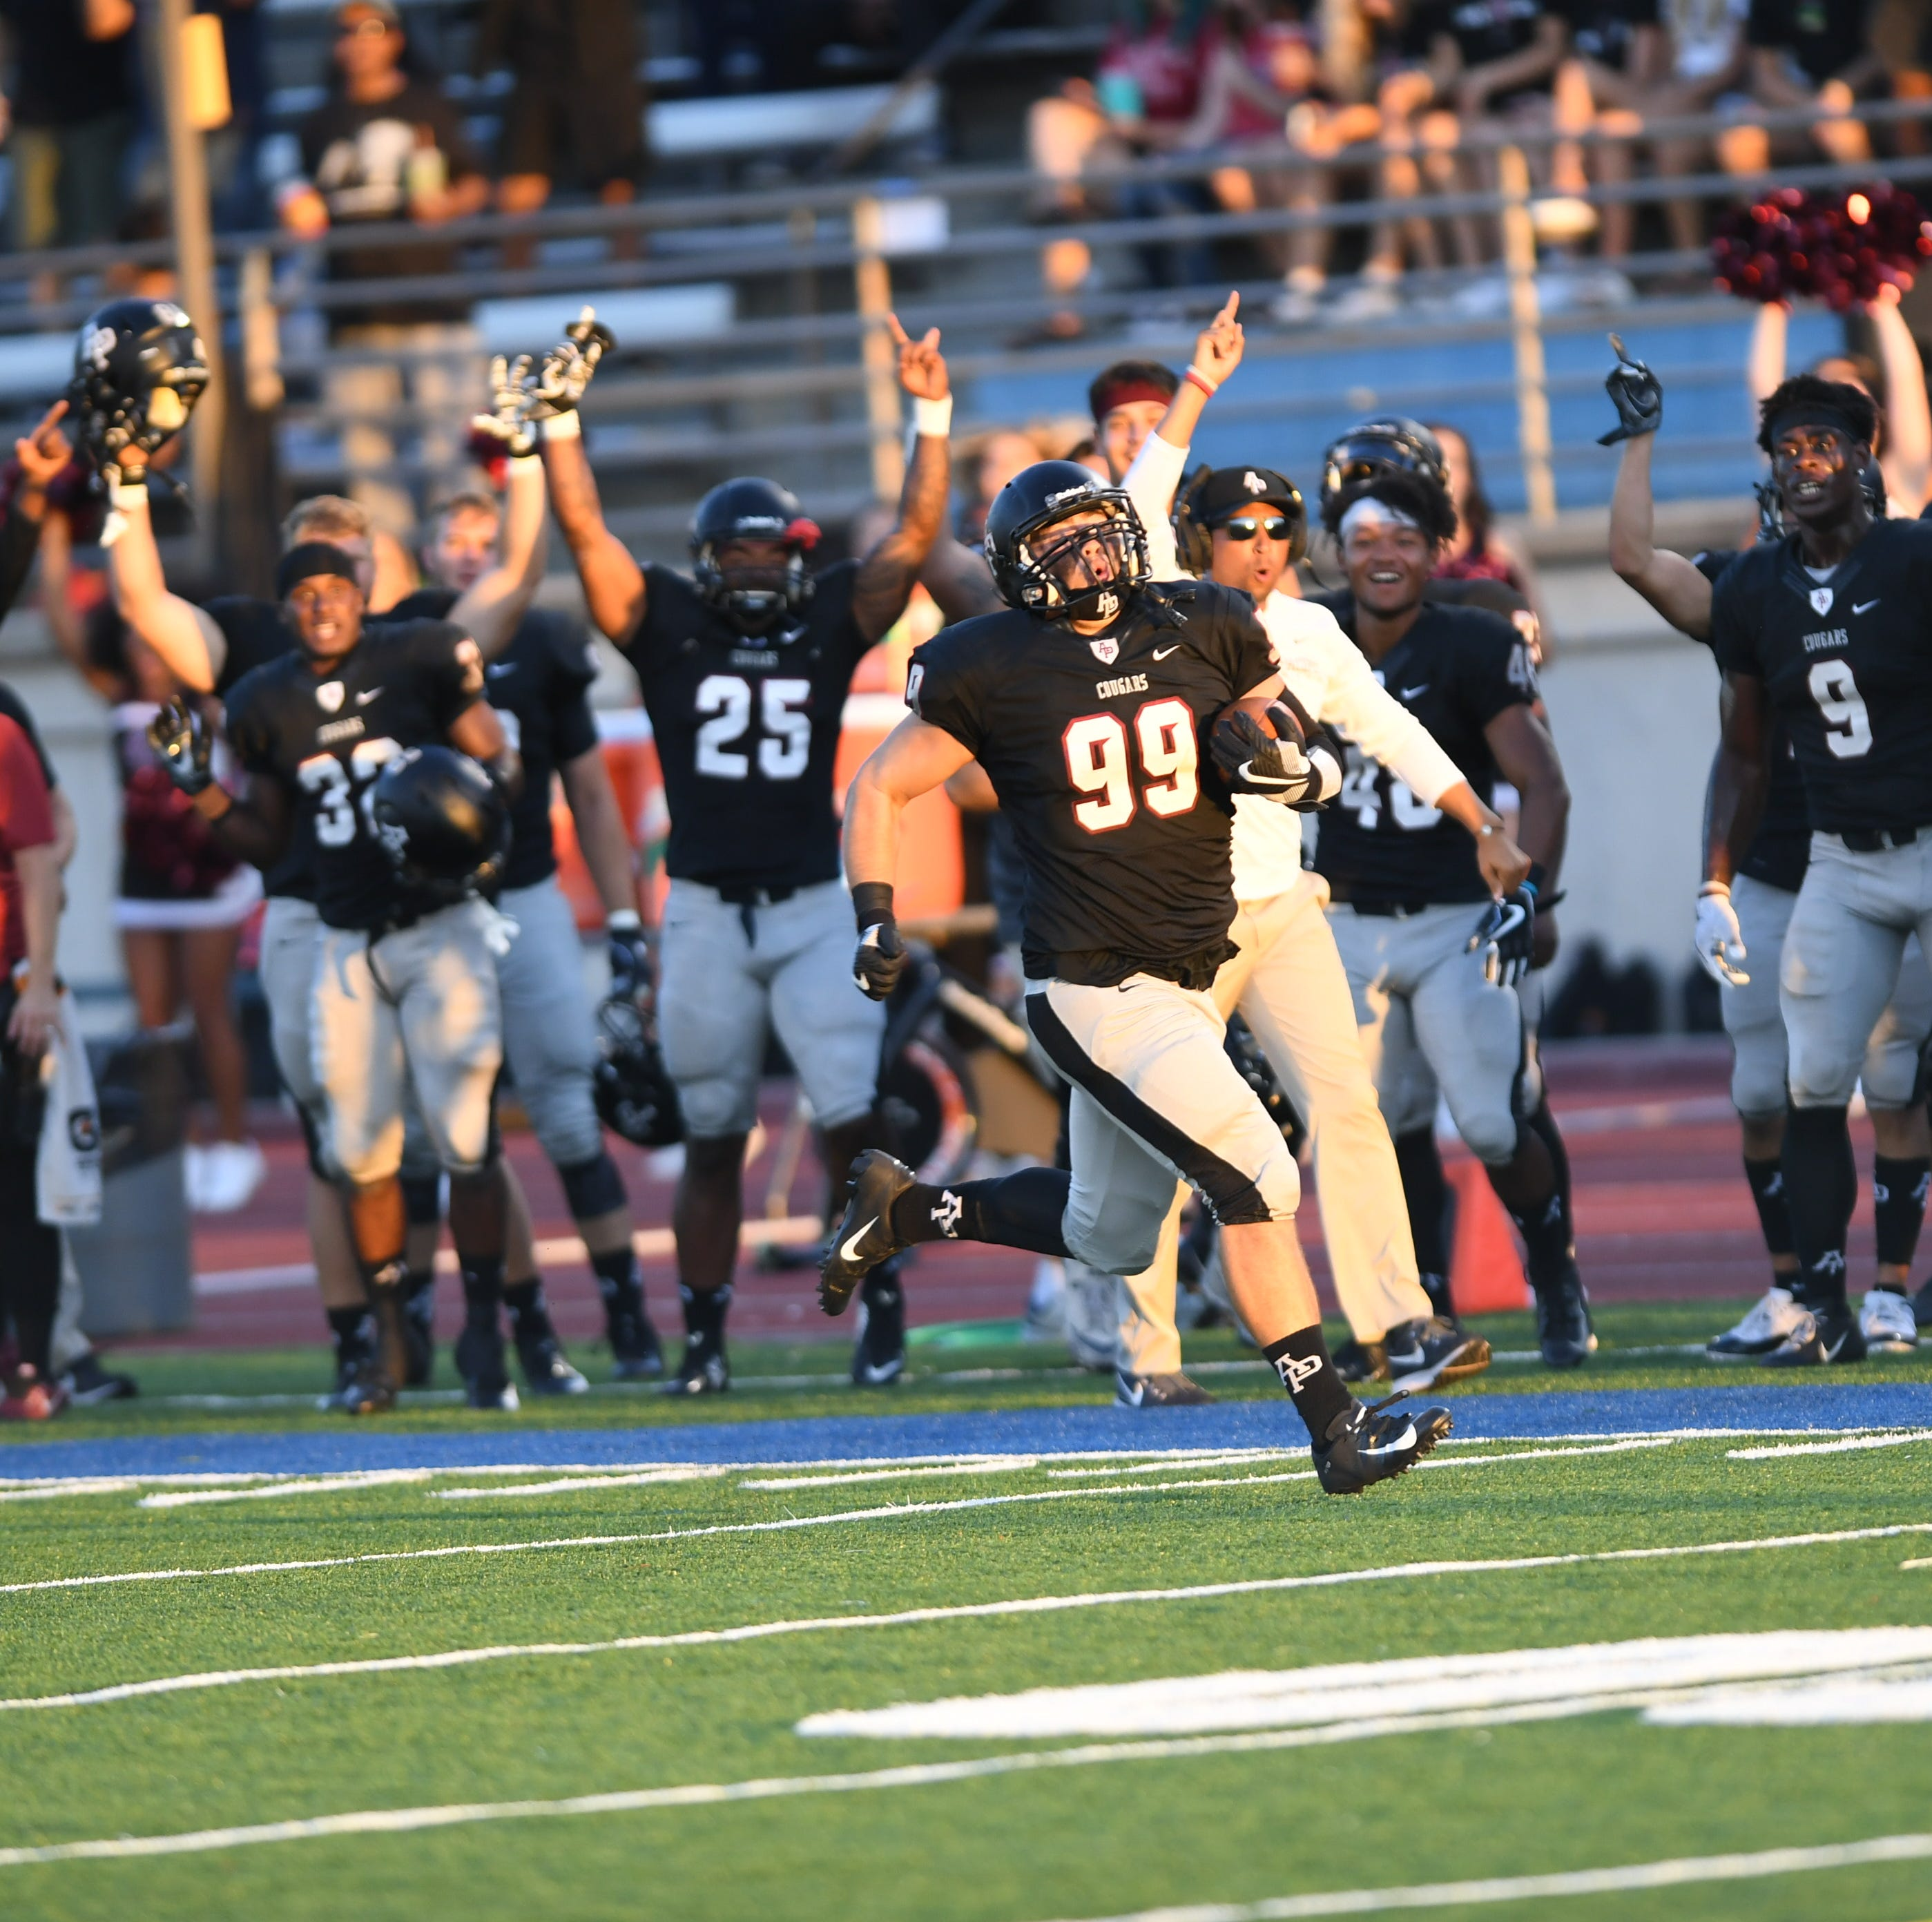 'OH. MY. GOSH. I have the football in my hands' — Robbie Polimeni, LQ grad and lineman, on his viral interception